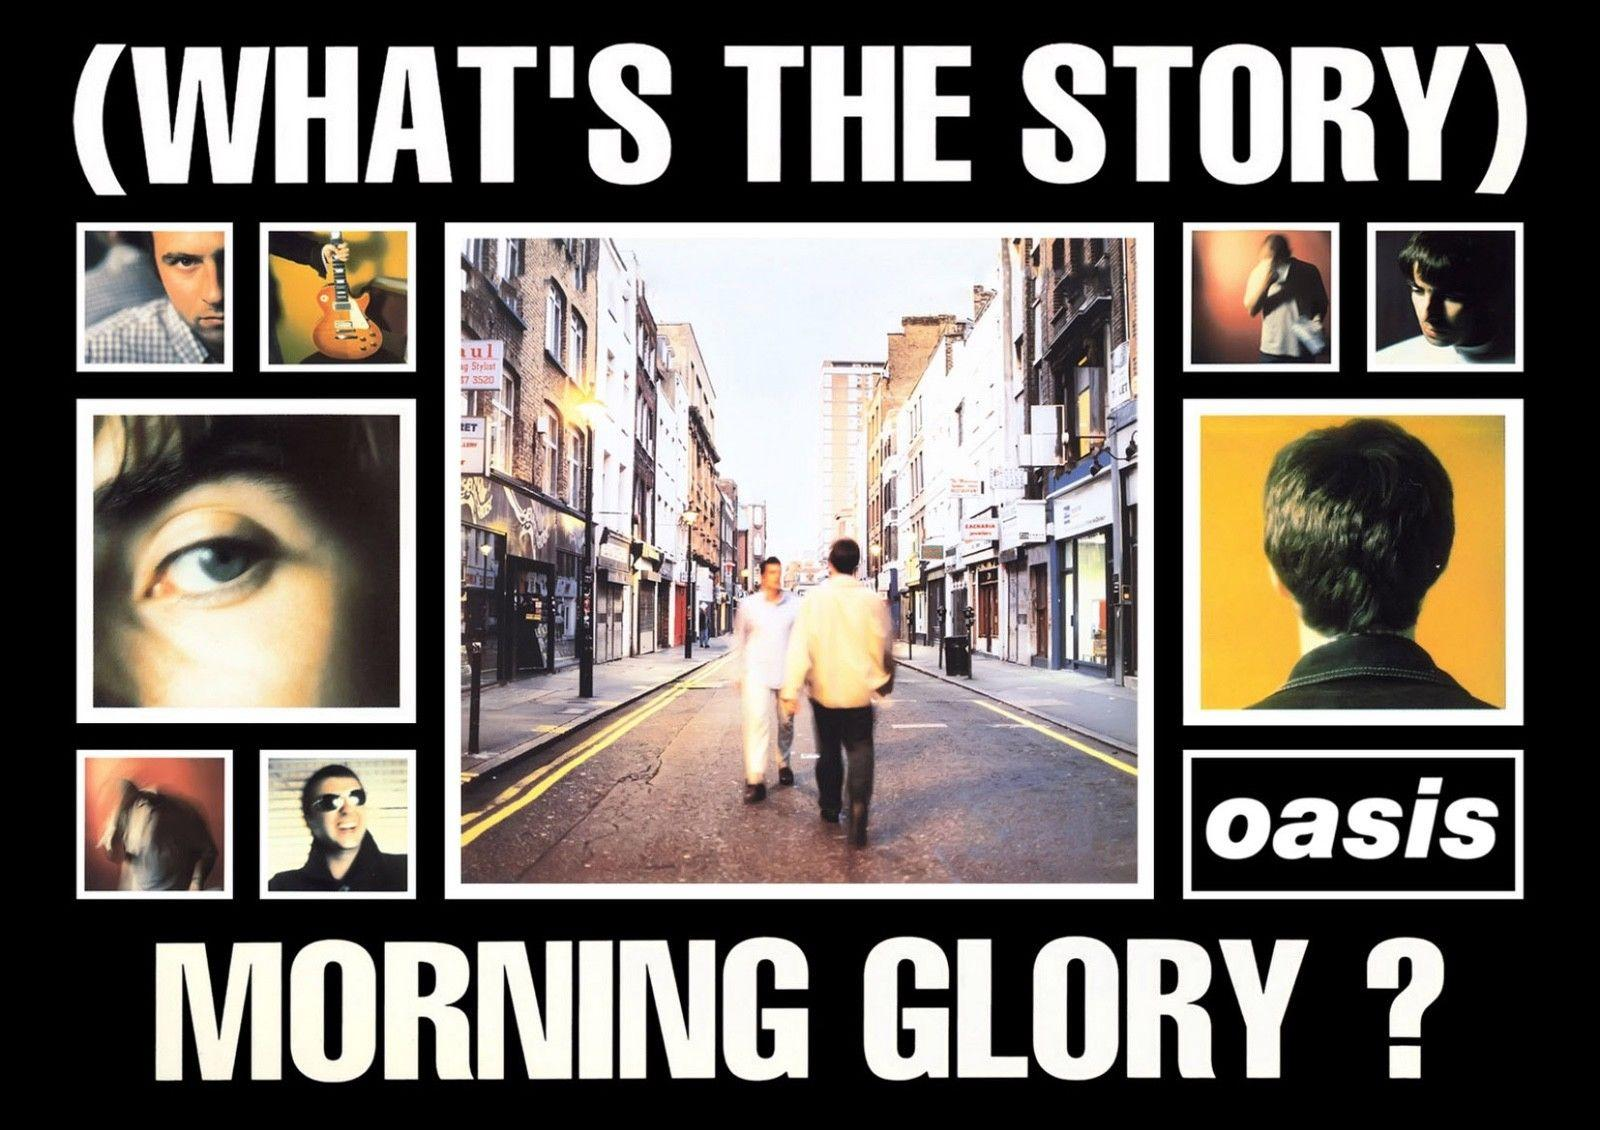 oasis-whats-the-story-morning-glory-room